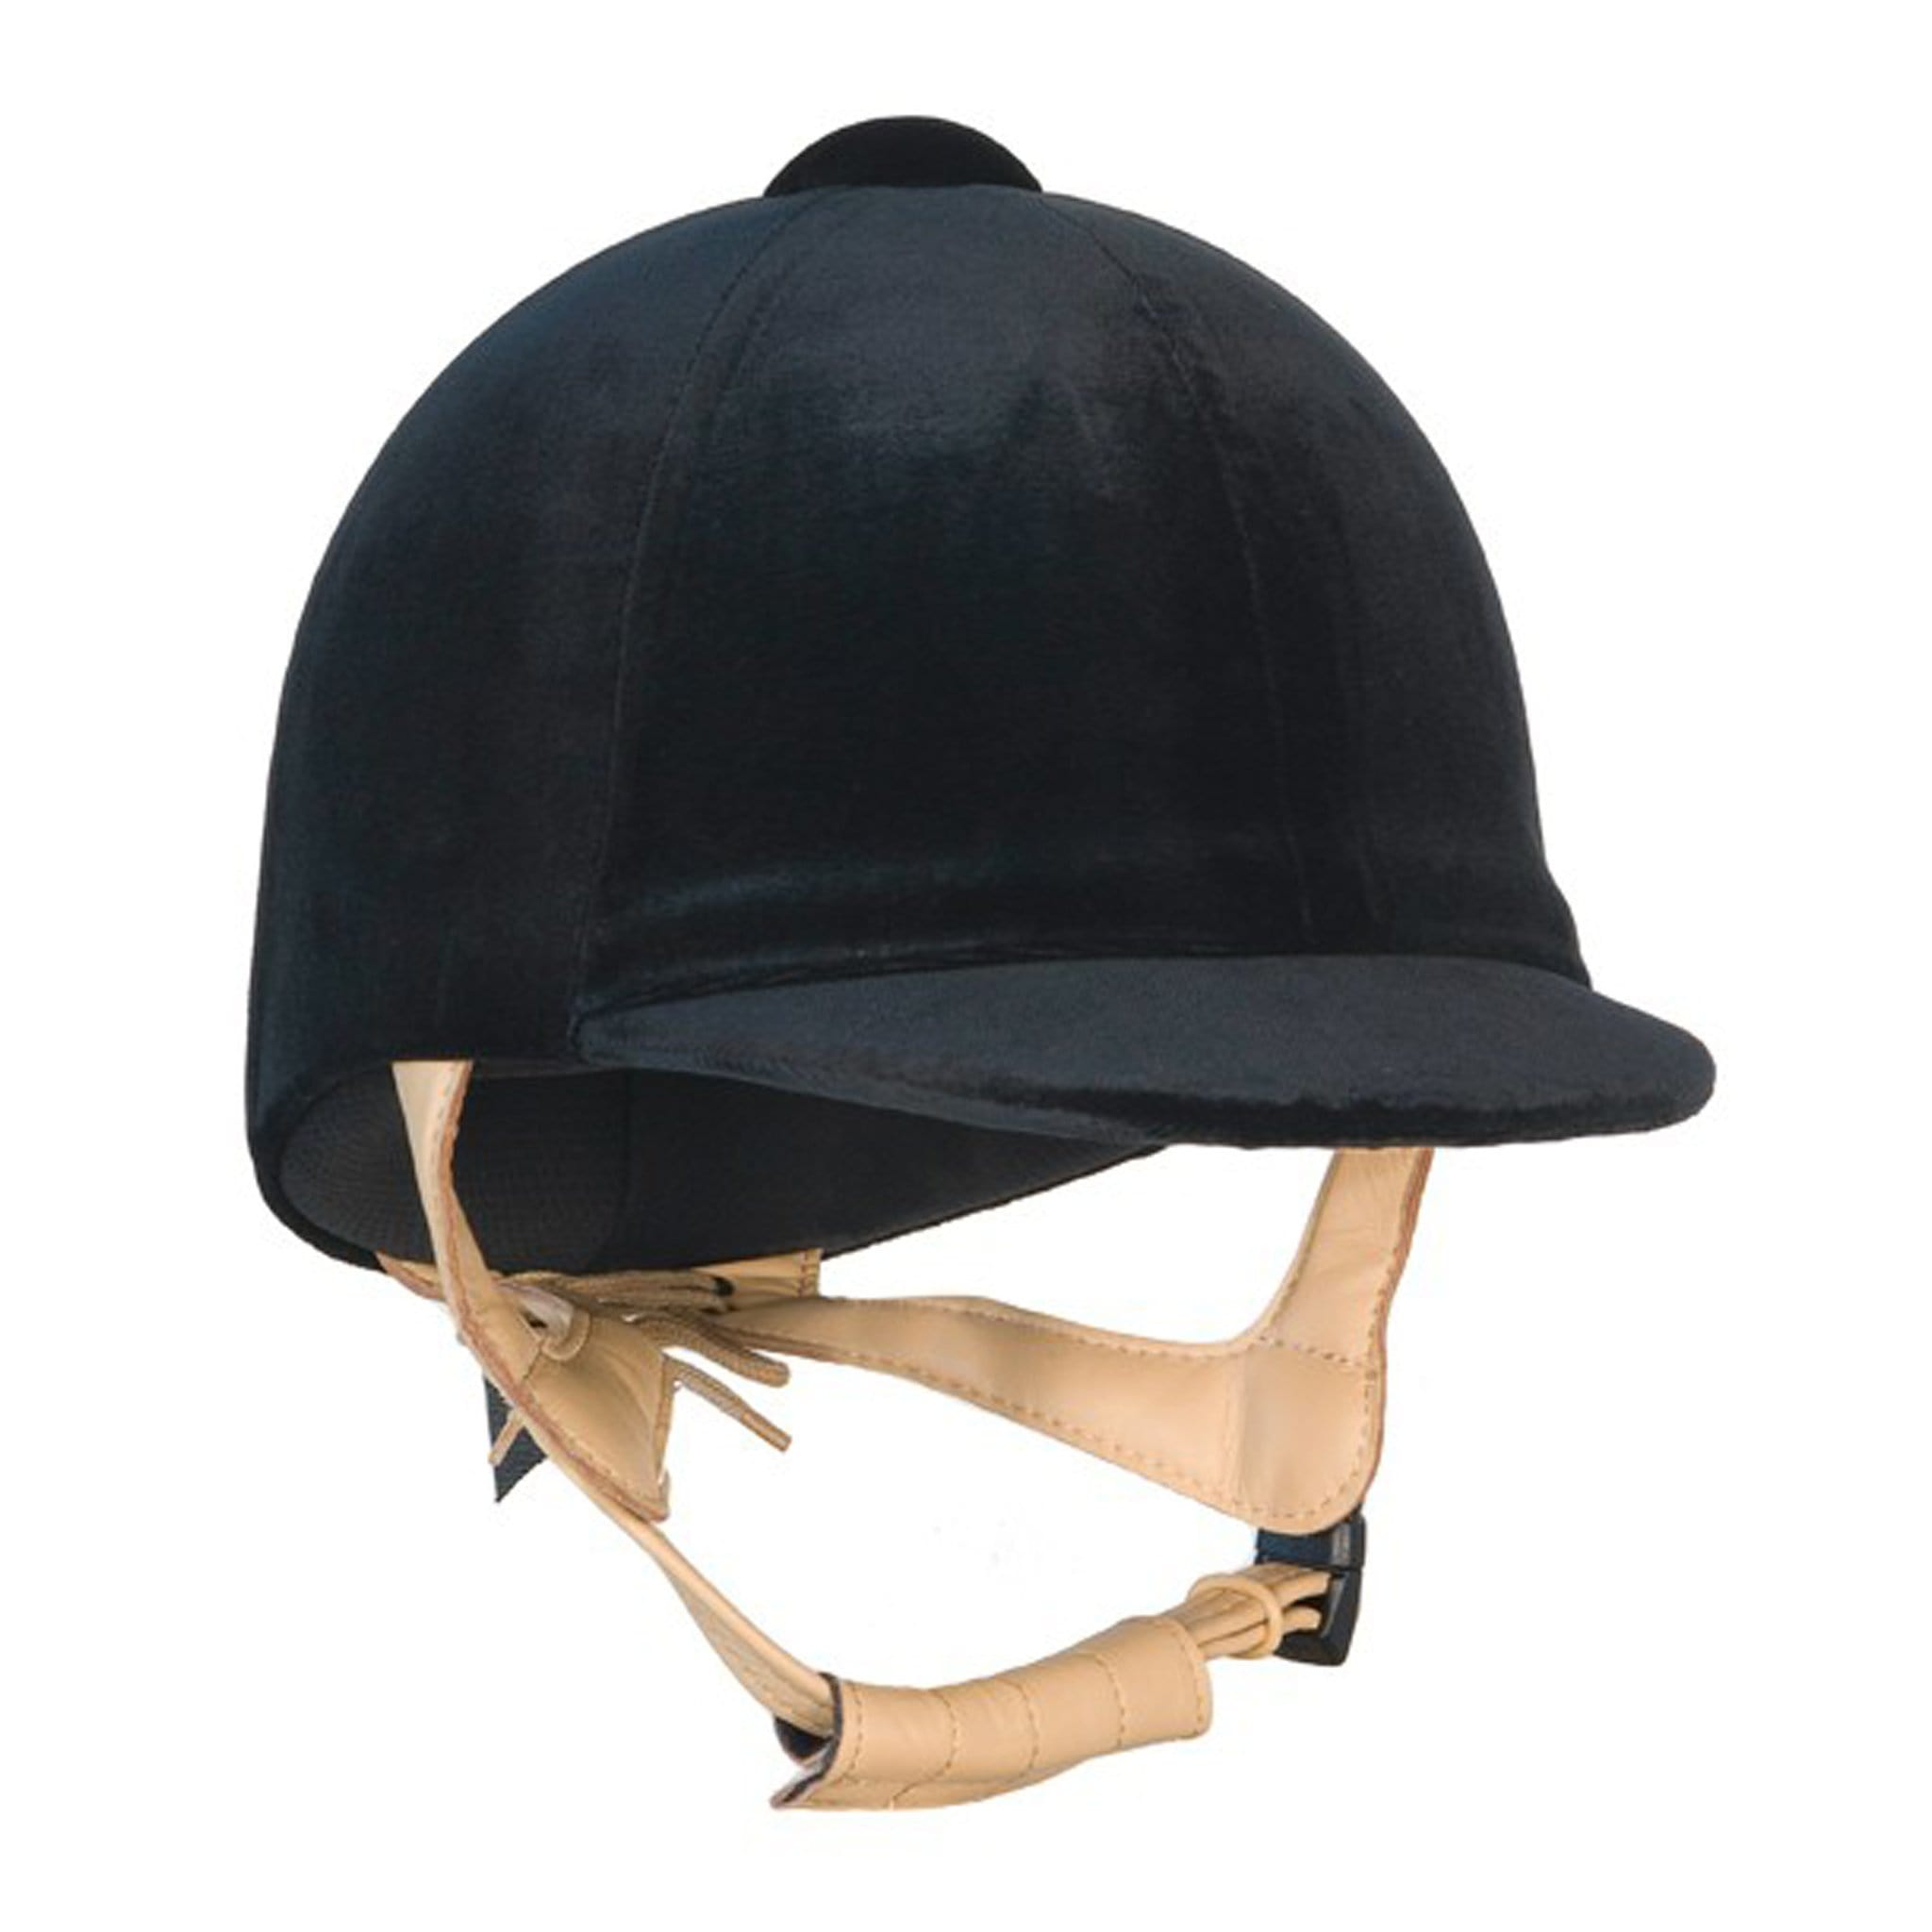 Champion CPX3000 Deluxe Riding Hat Black CPX3000DELUXE/BK/51.